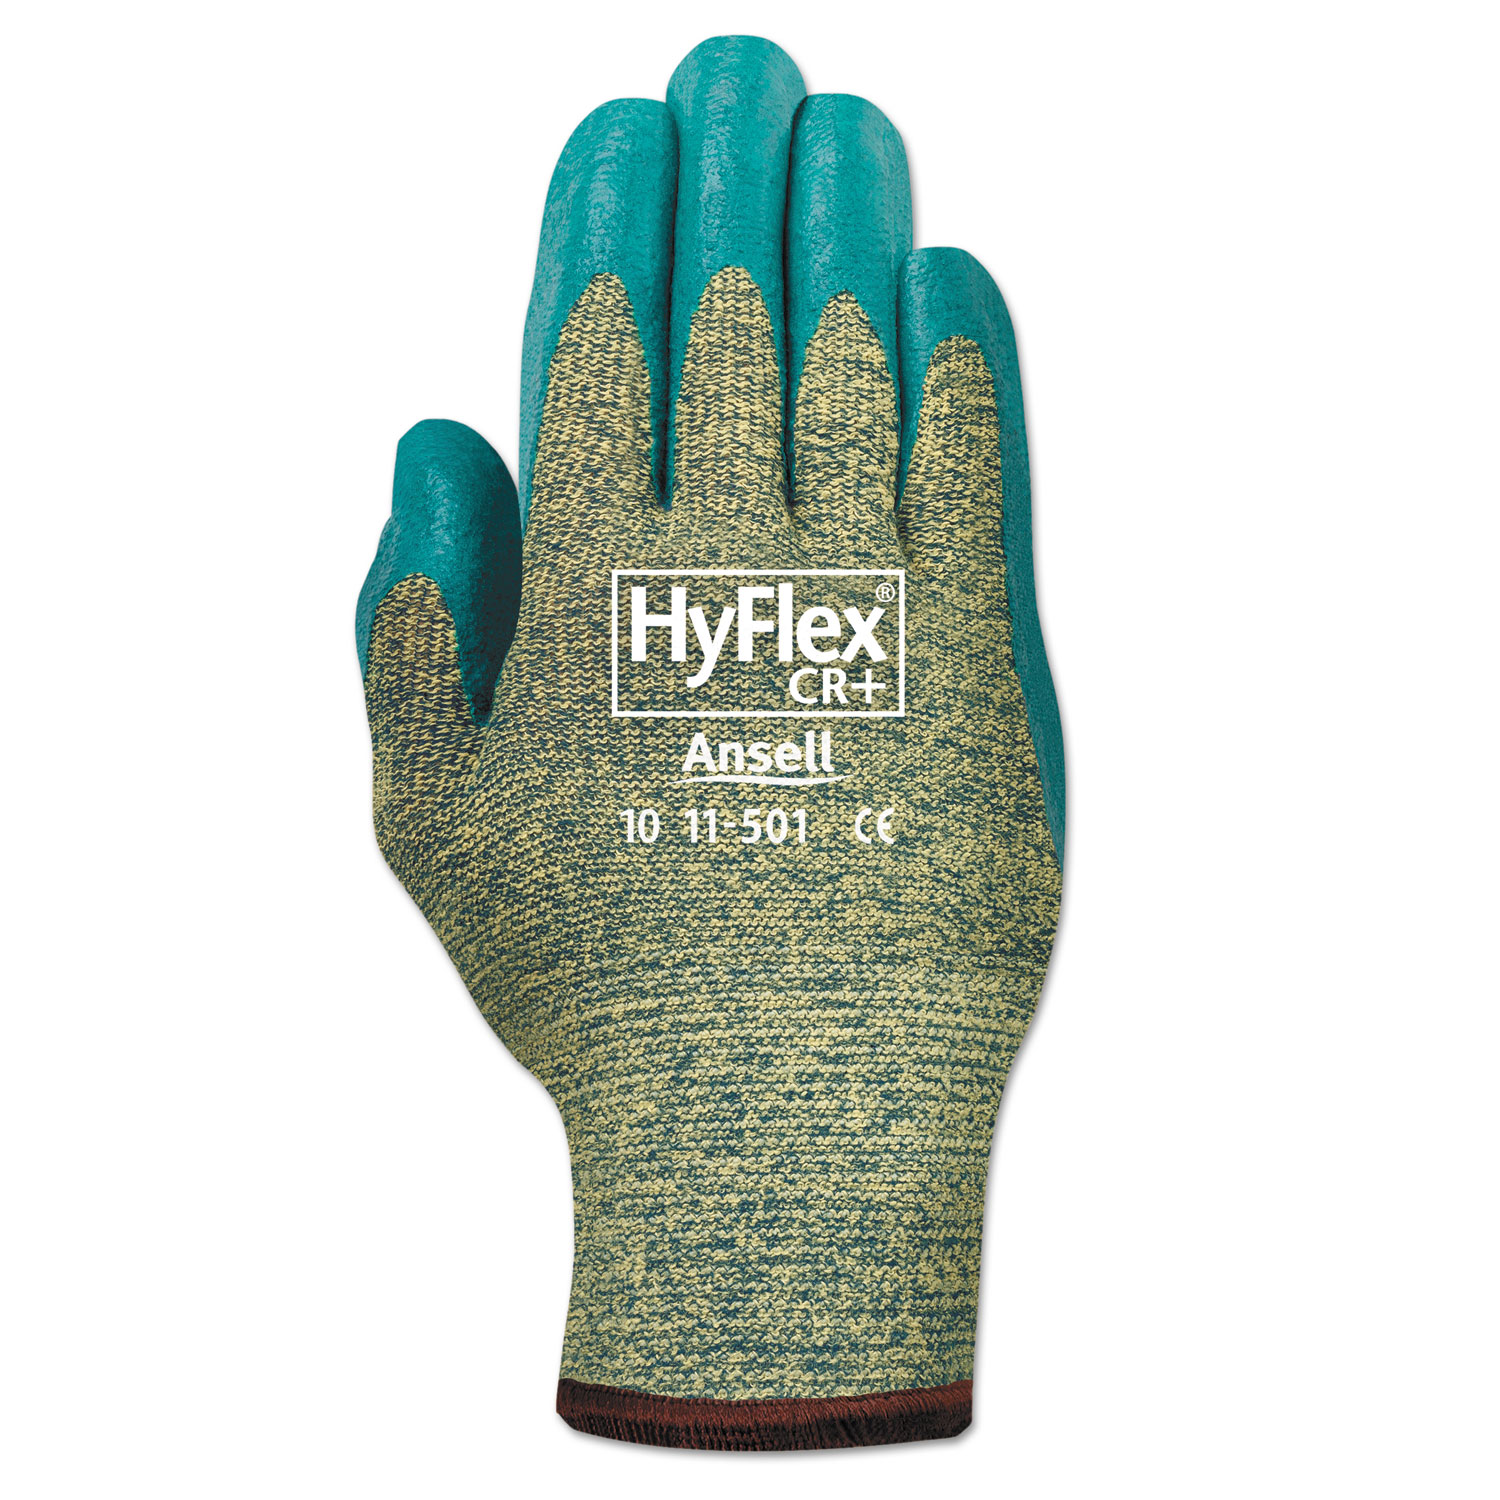 HyFlex Medium-Duty Assembly Gloves, Blue/Green, Size 9, 12 Pairs